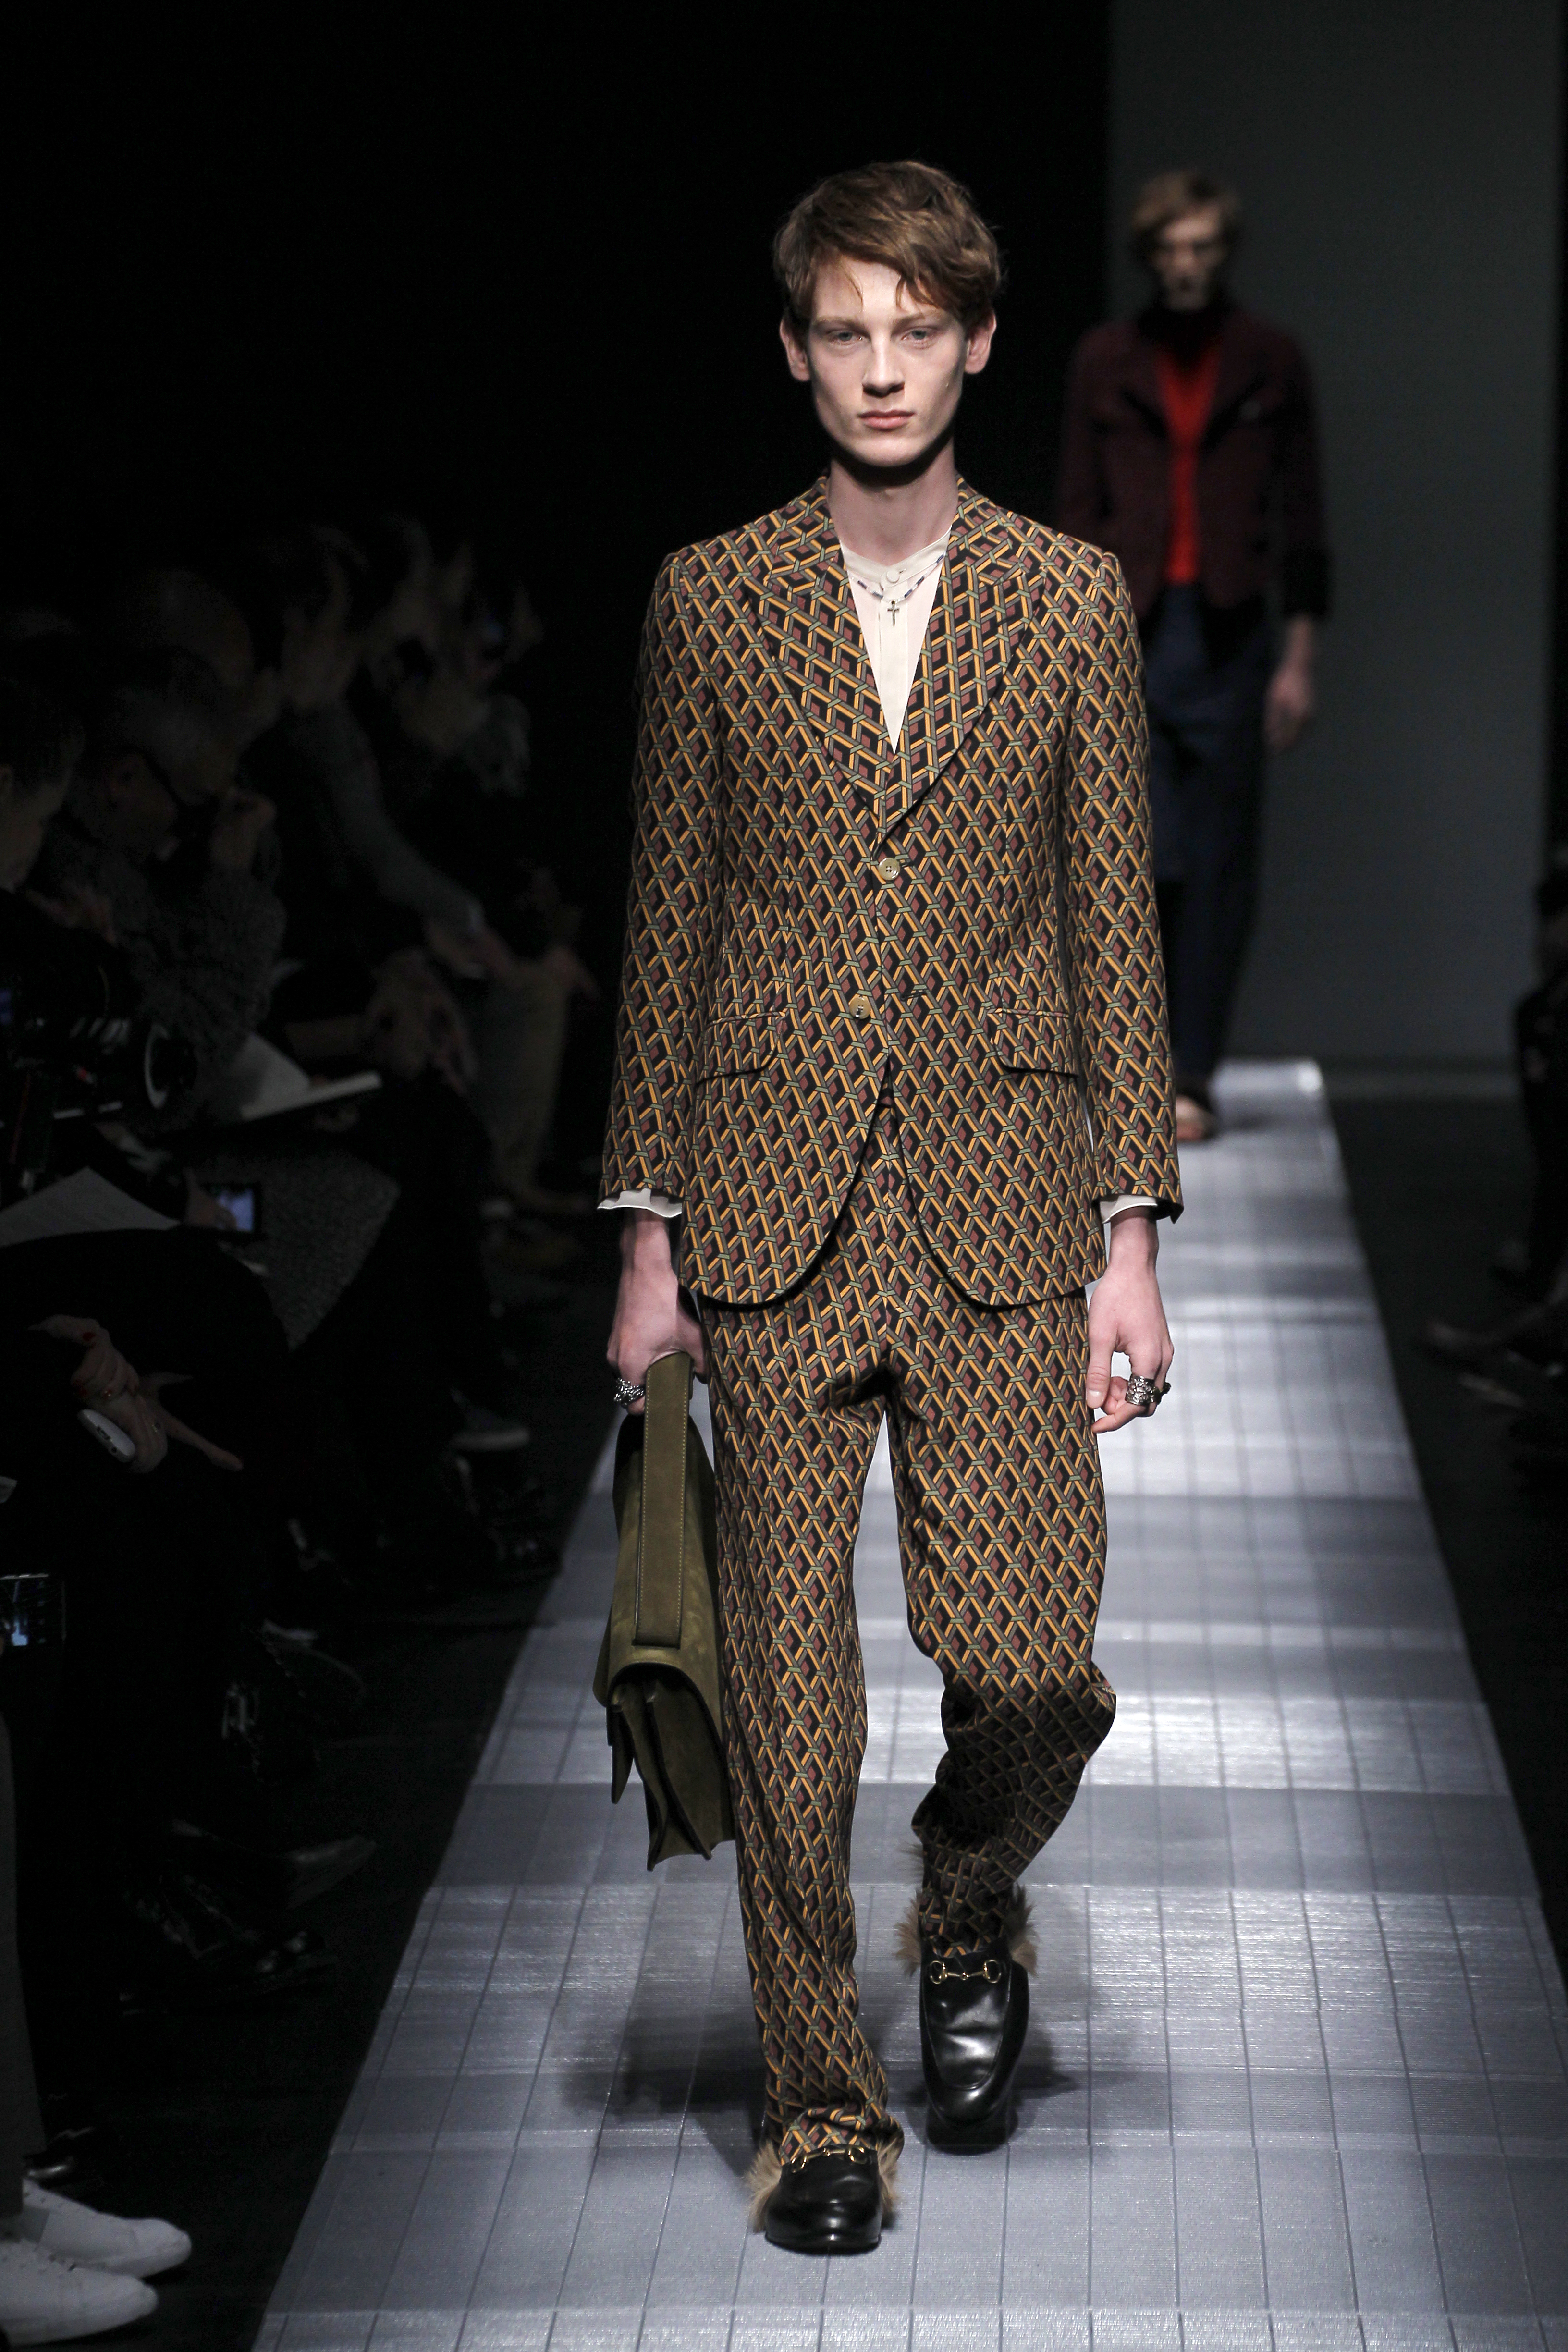 LOUIS VUITTON Official USA Website - Louis Vuitton presents a new Fall-Winter collection for Men created by former Artistic Diretor Kim Jones. All-terrain, cross countries, a global perspective.